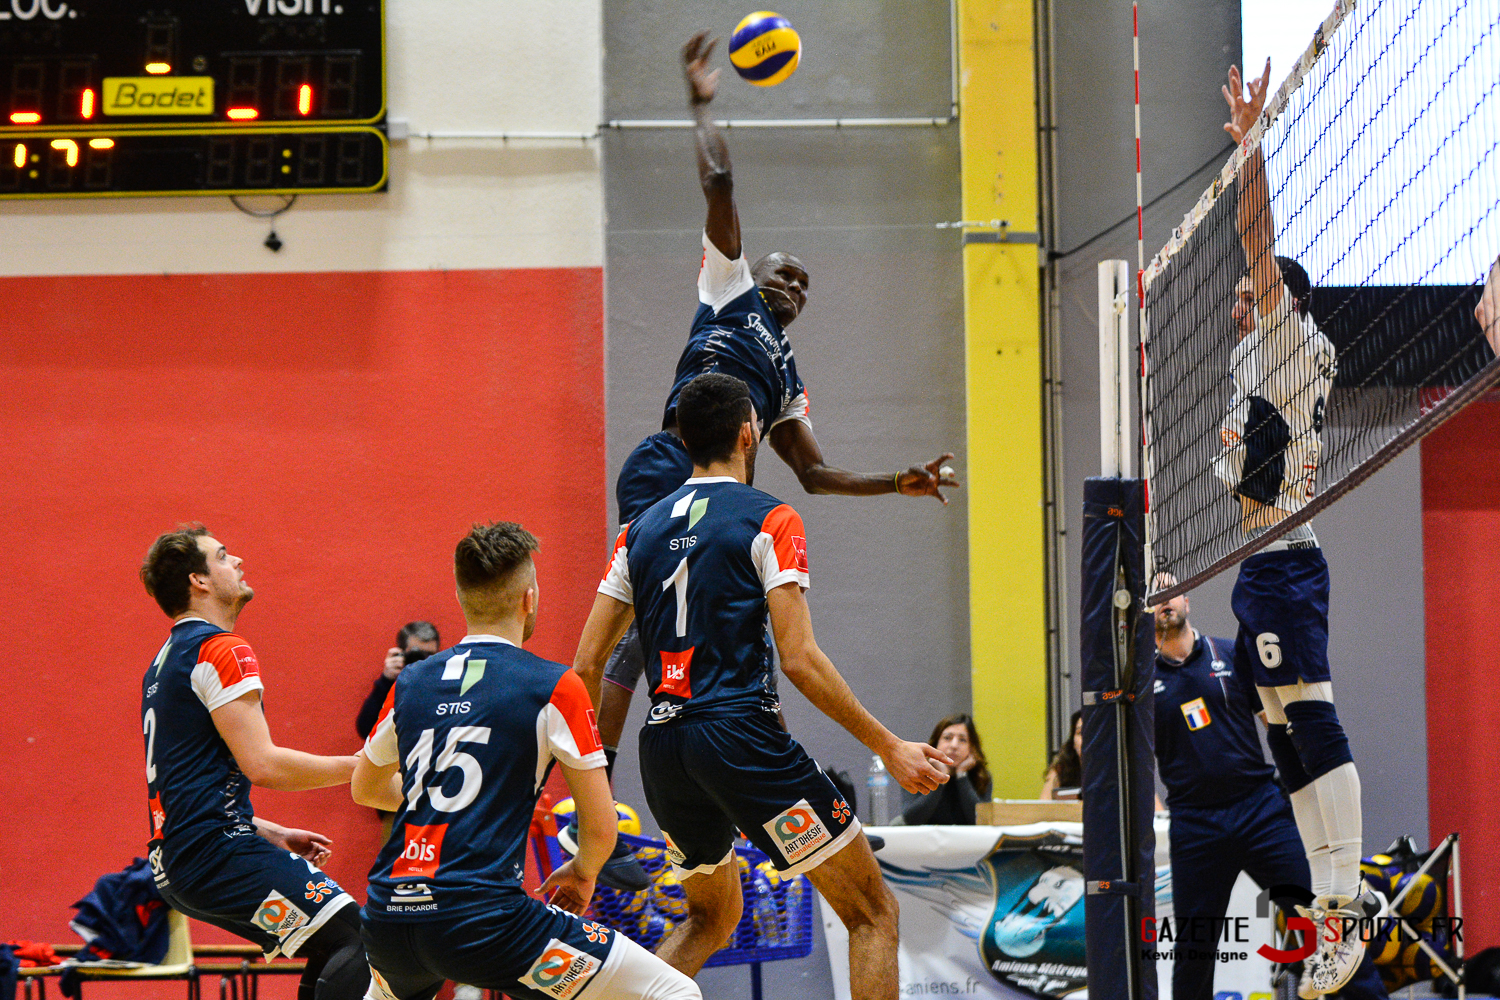 Volley Ball Amvb Vs Conflans Kevin Devigne Gazettesports 53